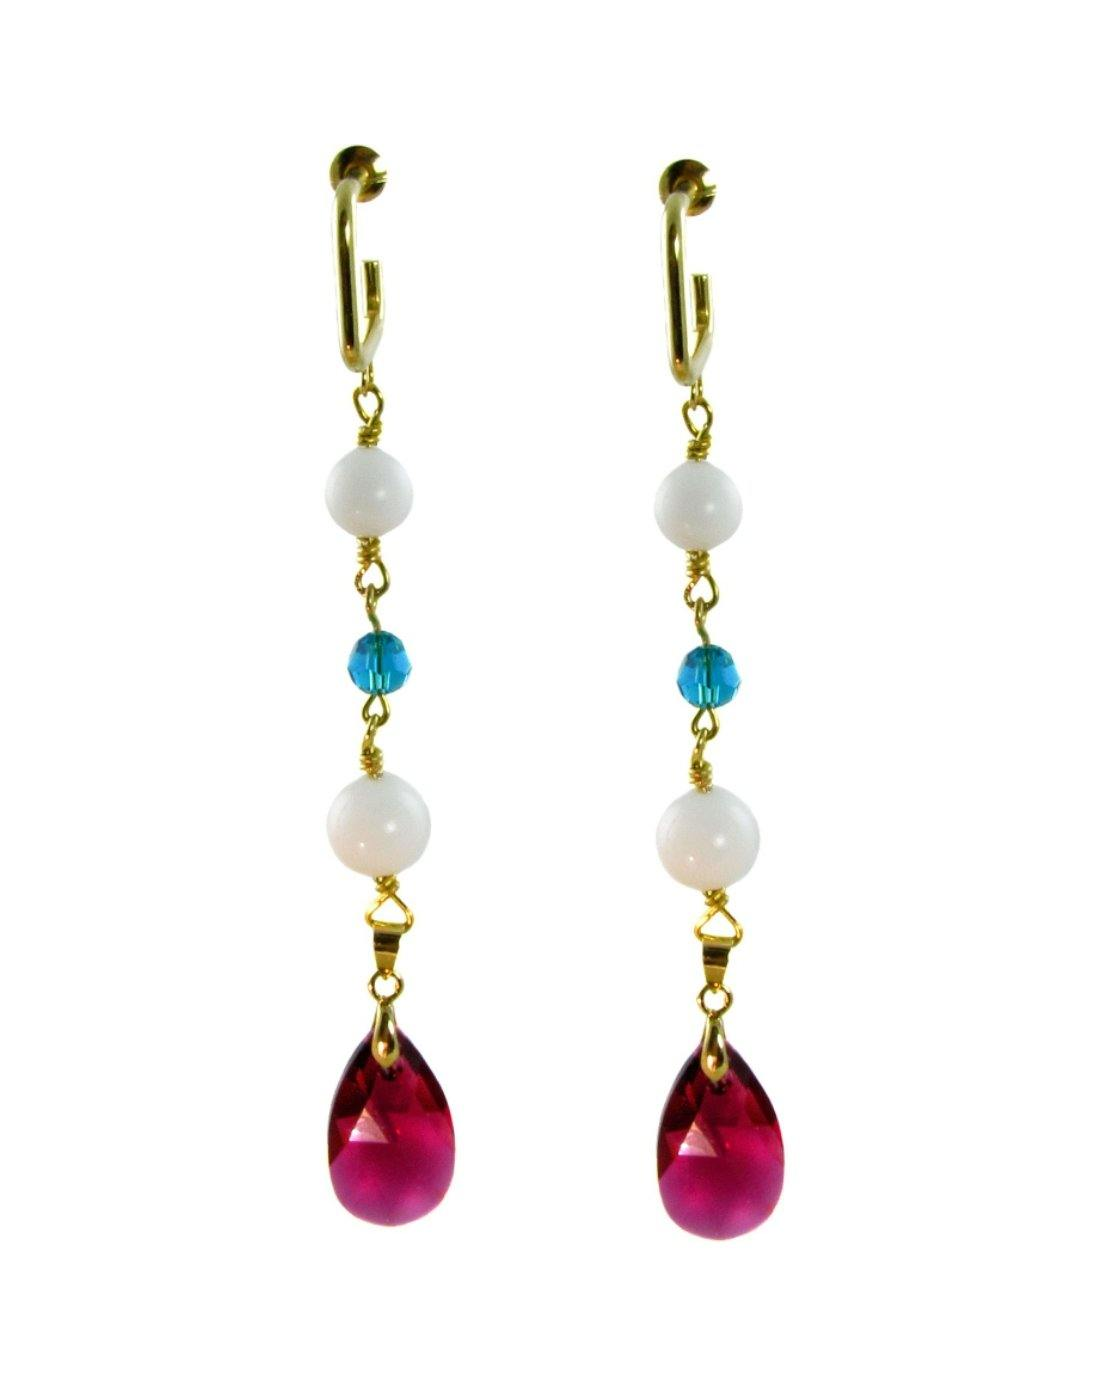 ELMA- Earrings with fuschia drop swarovski crystals -maria-moyseos